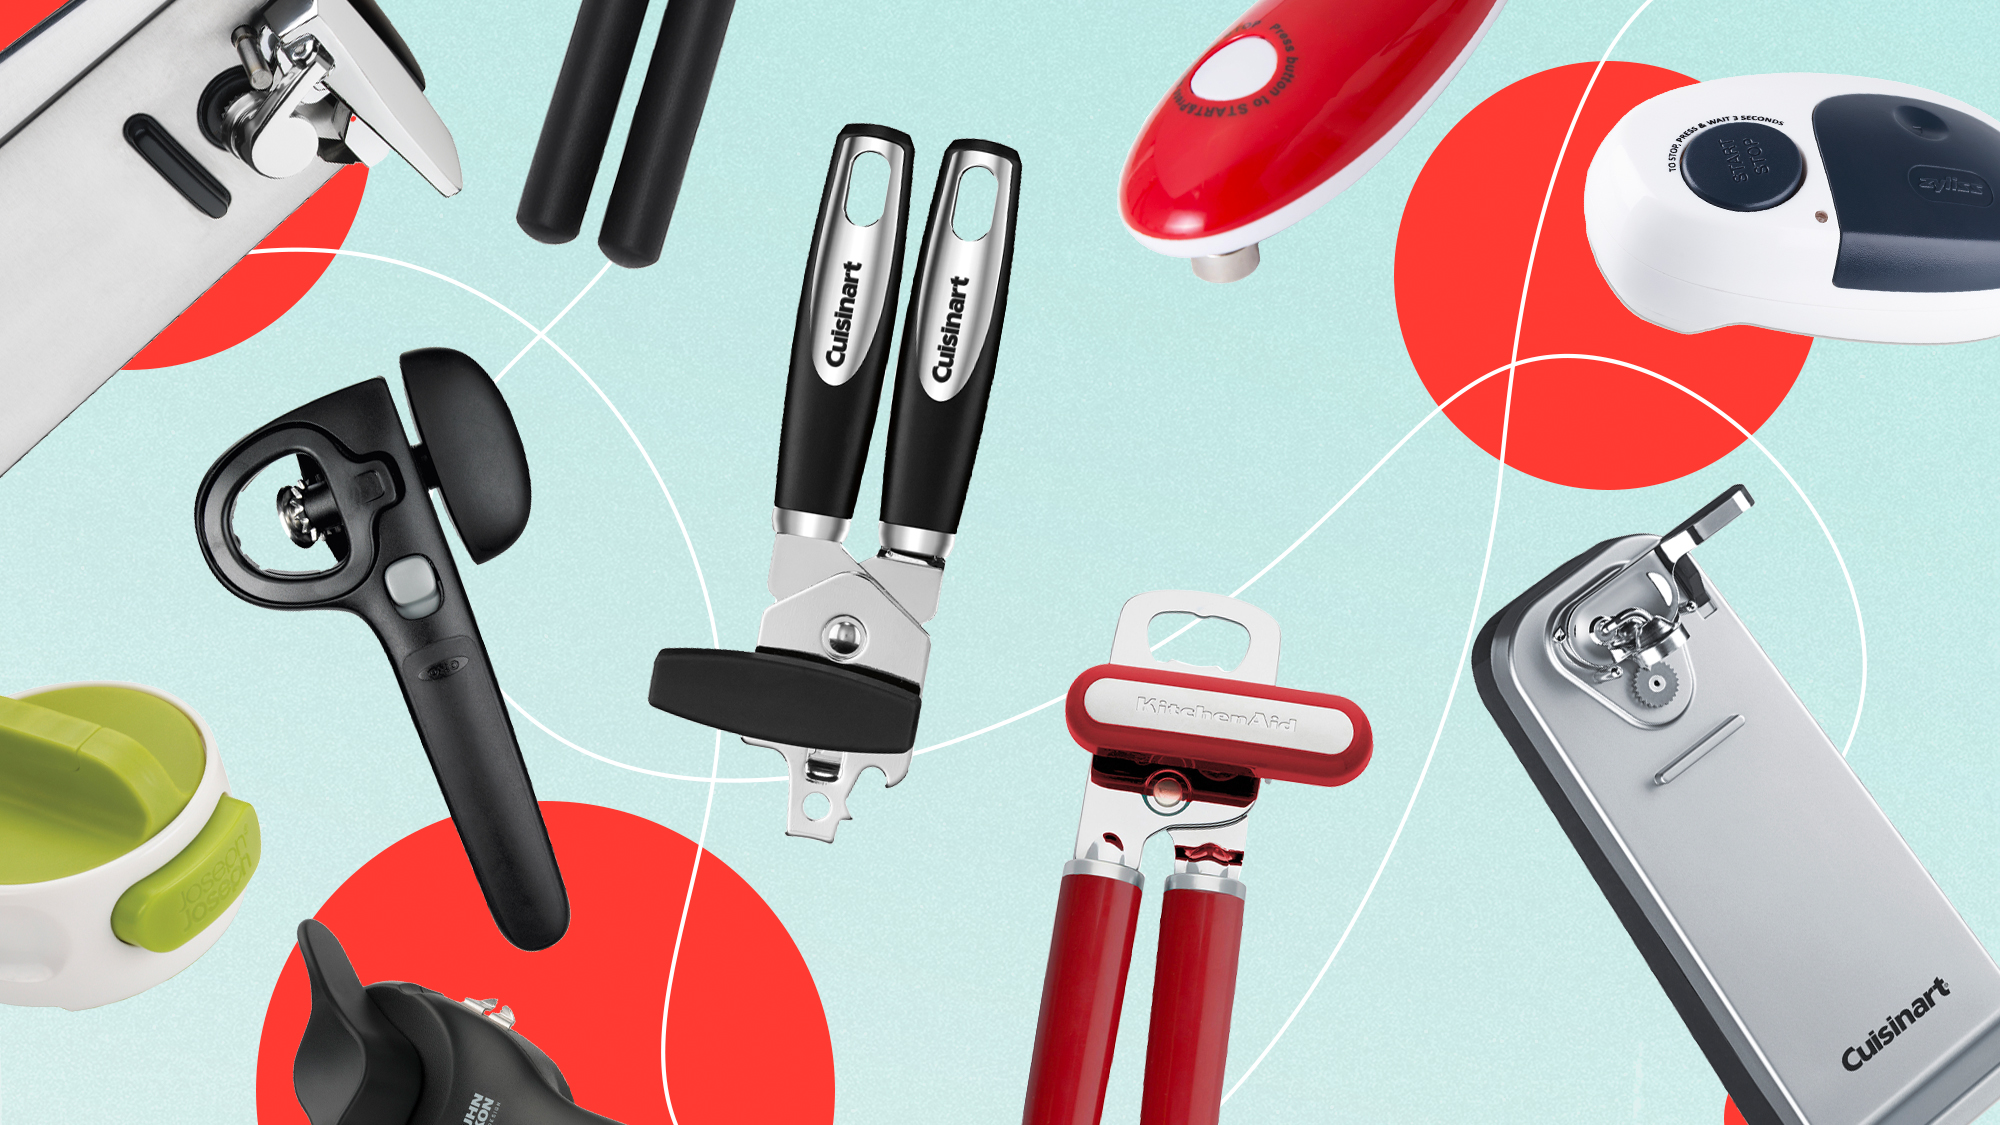 An assortment of can openers on a designed background